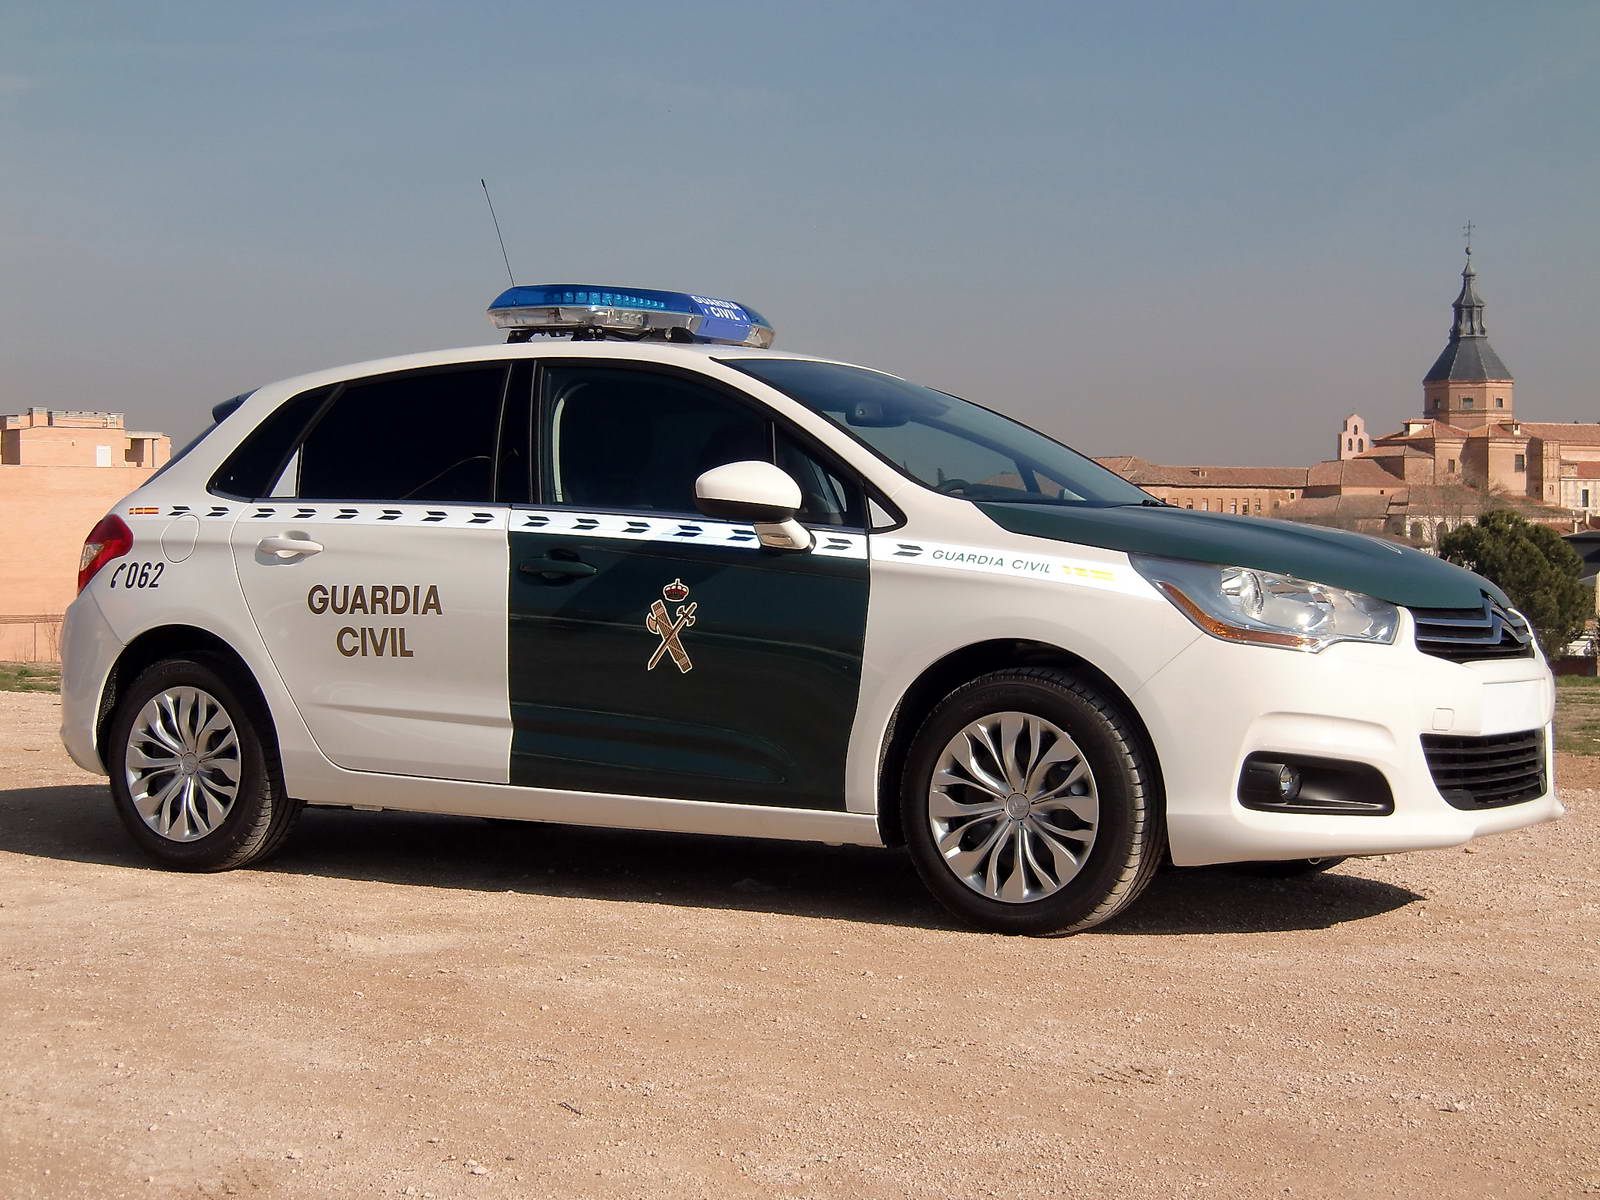 guardia civil c4 02